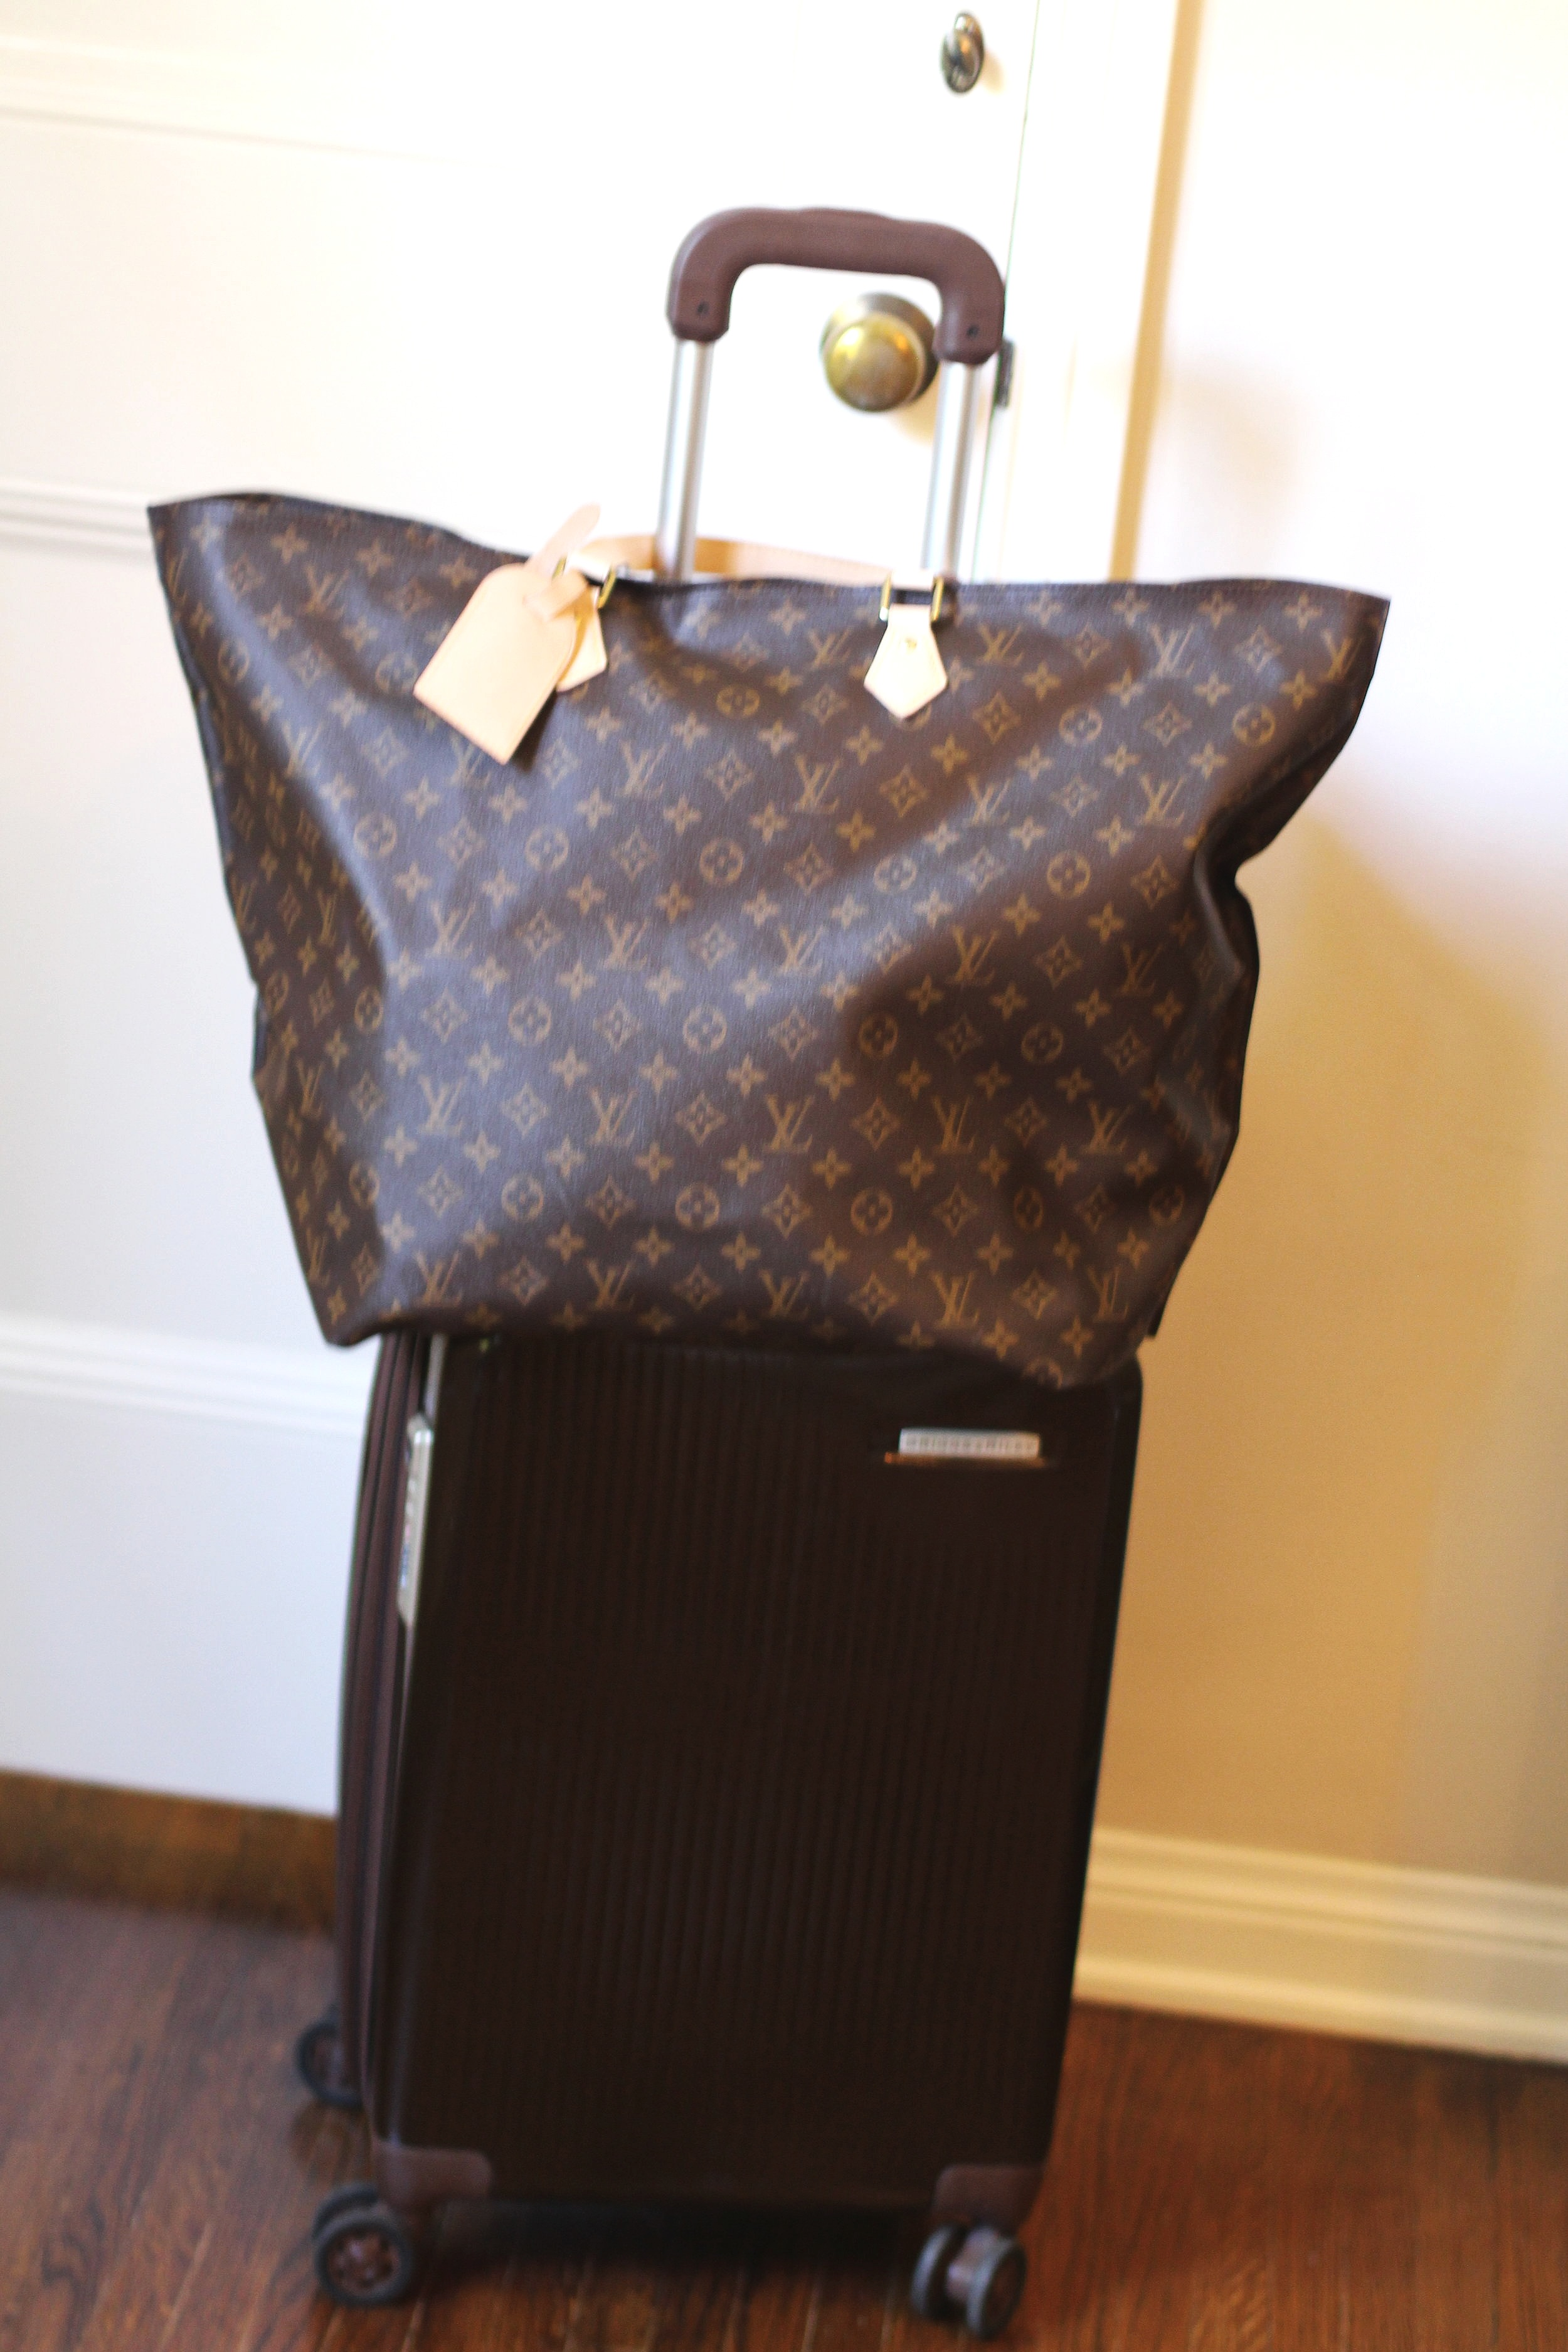 And voilà, it all fits!    Louis Vuitton travel bag   ,    Briggs and Riley luggage